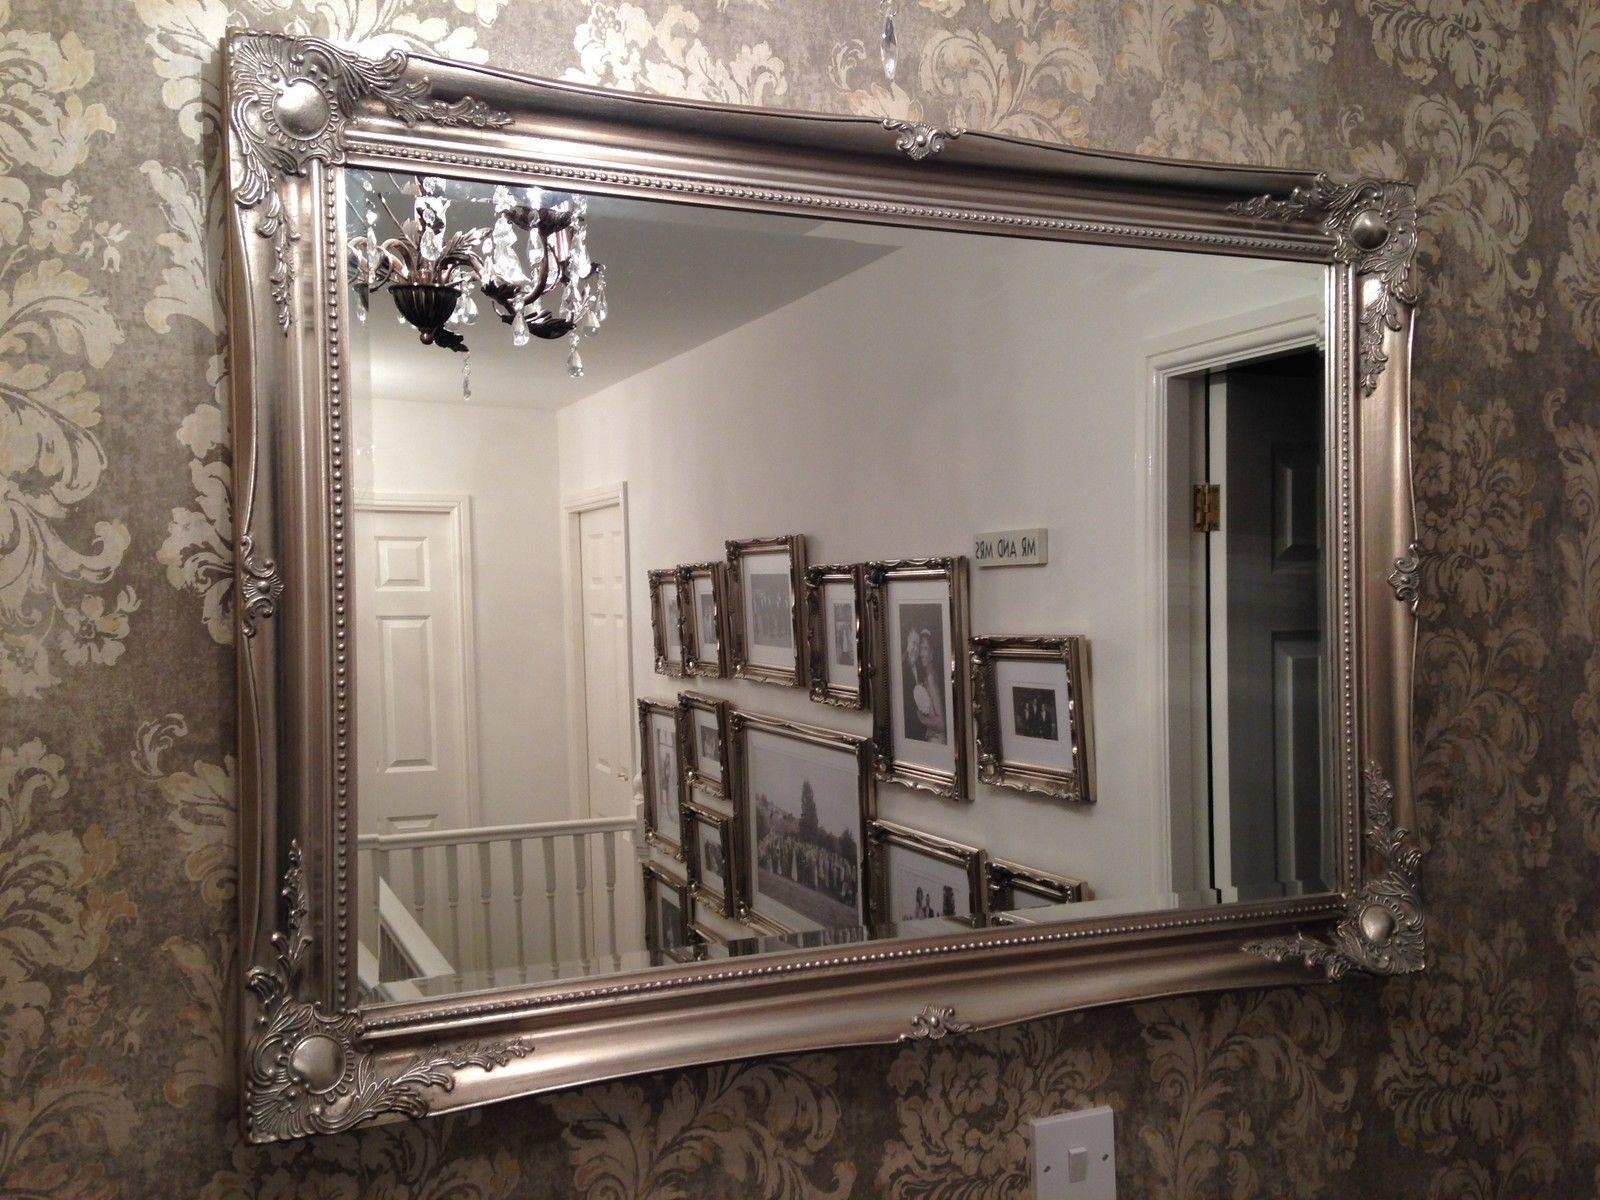 Old Fashioned Wall Mirrors Antique Mirror Wall Covering Vintage Intended For Antique Mirrors For Sale (View 12 of 16)